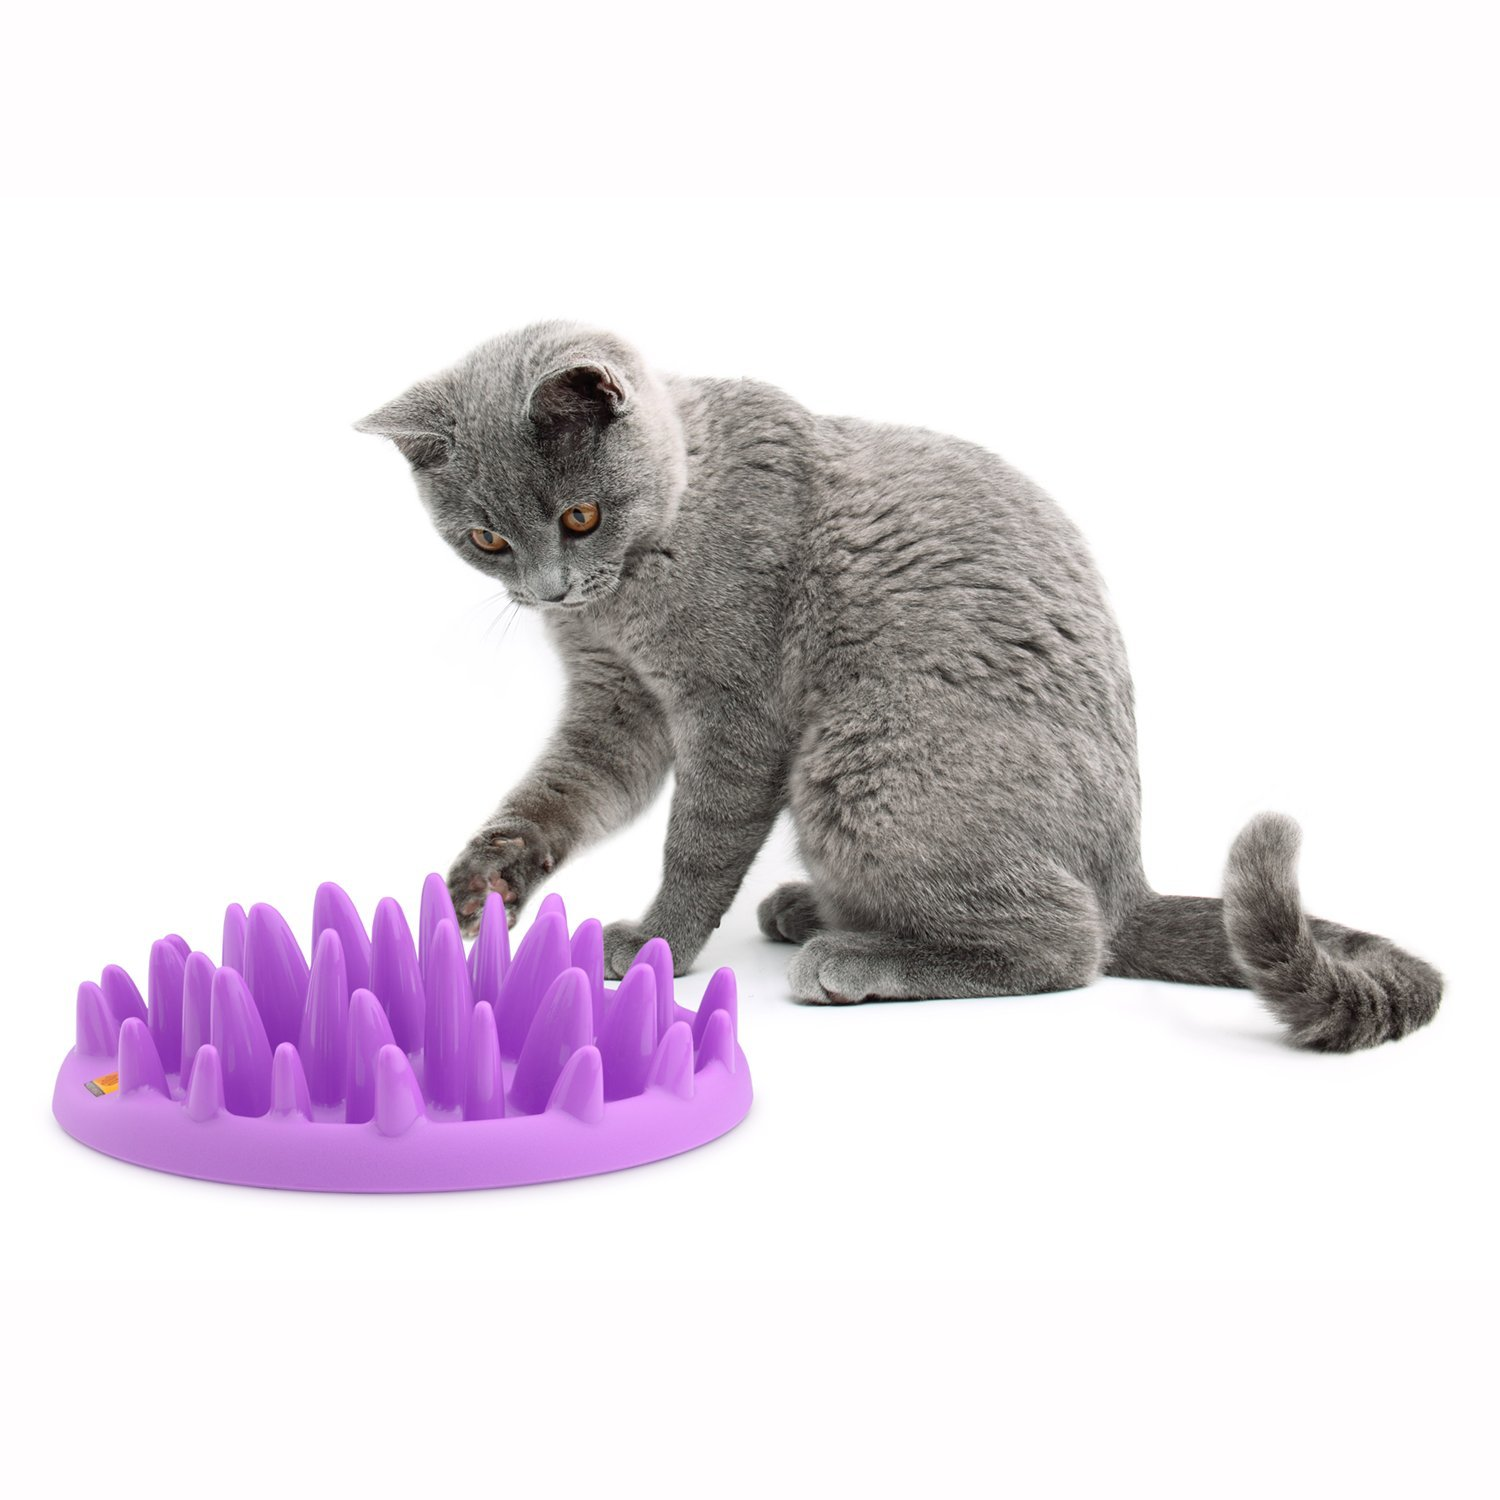 CATCH Interactive Feeder by The Company of Animals